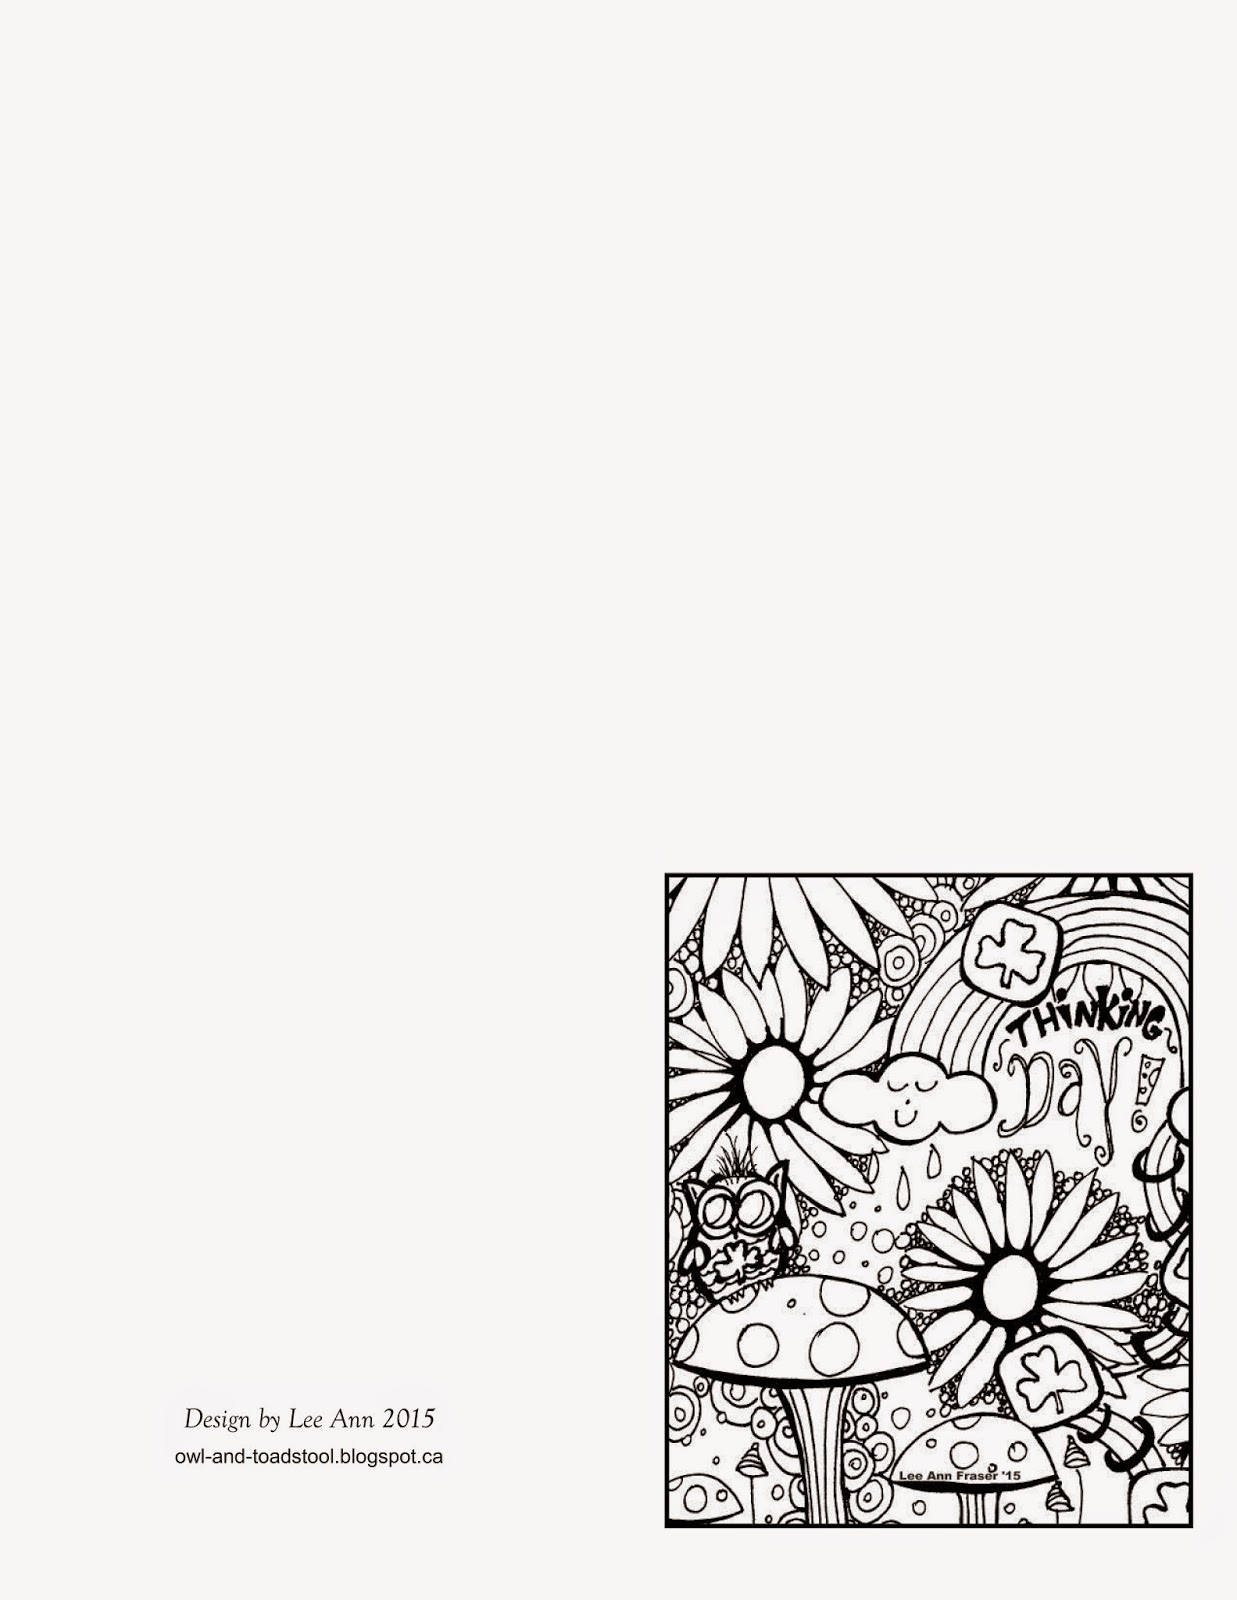 Thinking Day Passport Template world thinking day activities and – Free Passport Template for Kids